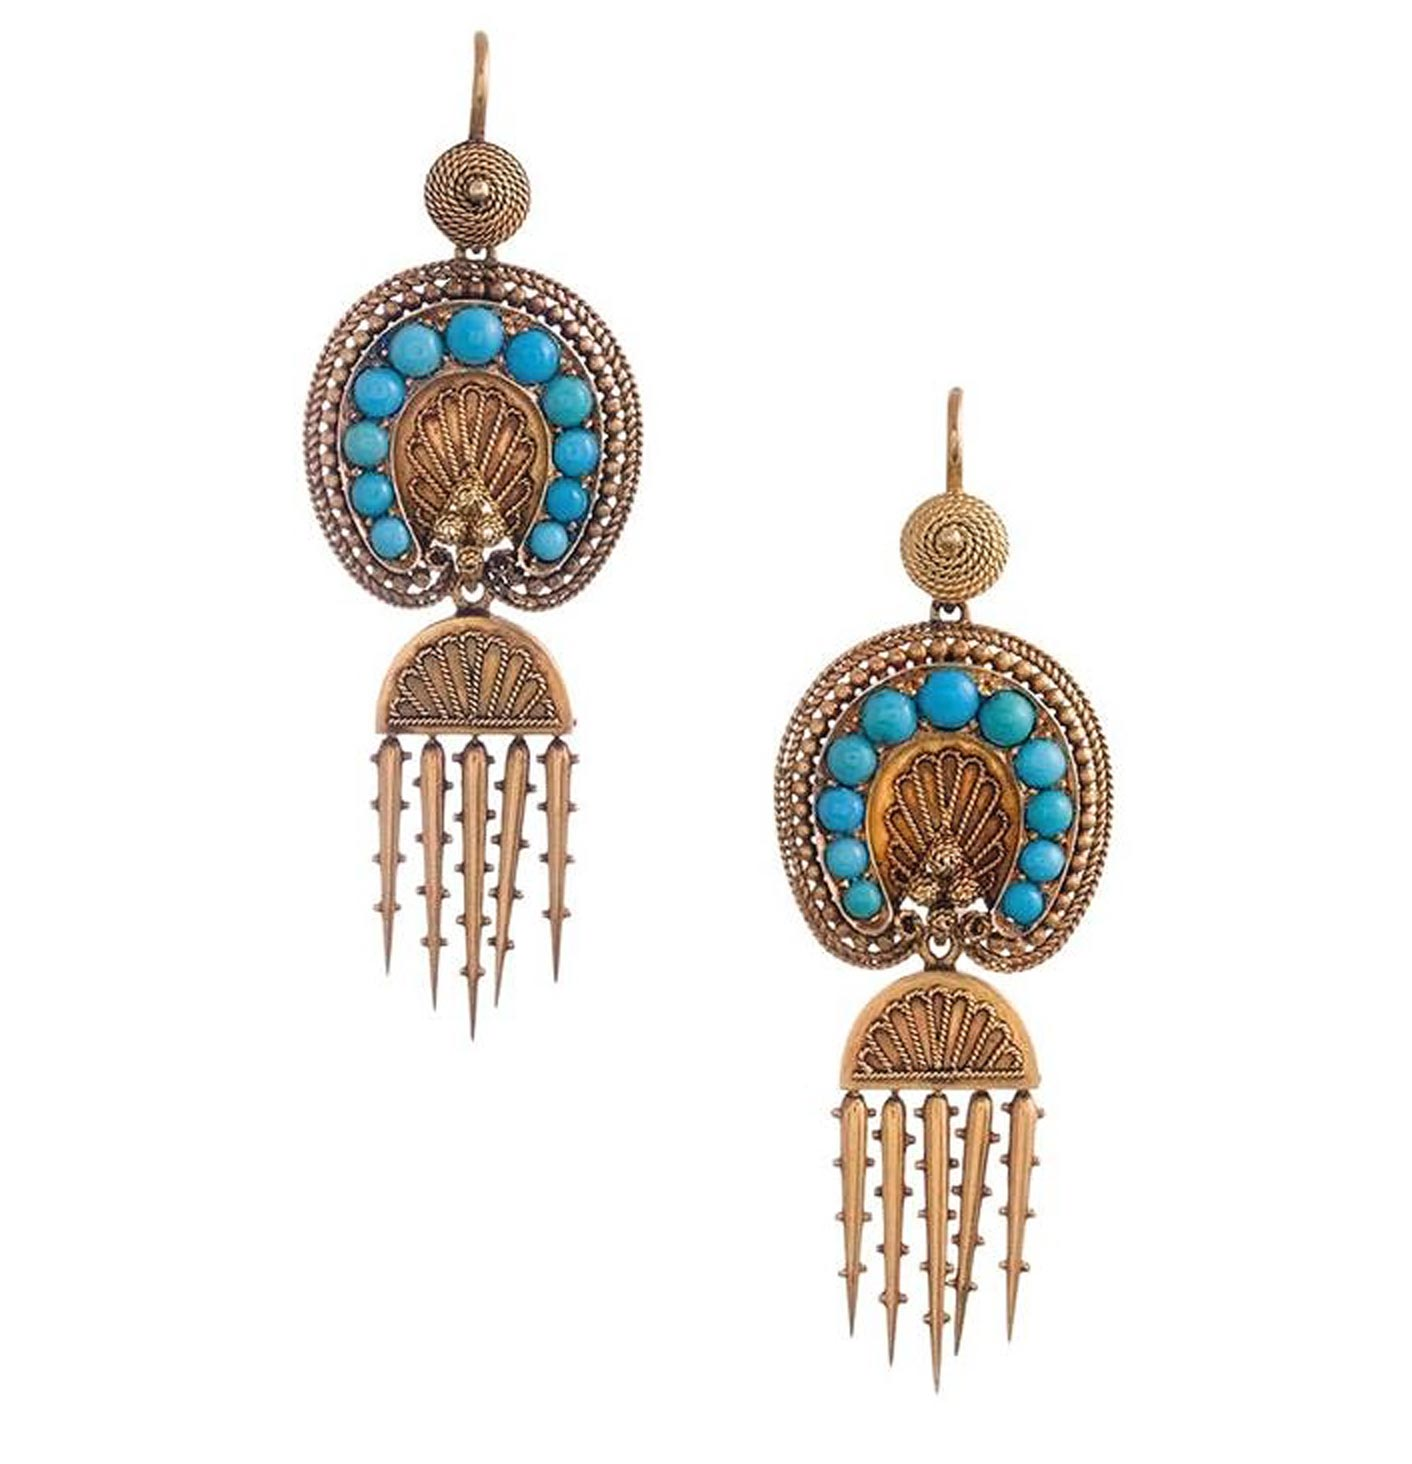 """Pair of """"Day-to-Night"""" Double Drop Fringe Earrings, ca. 1870. 18-karat gold and turquoise, 2 ¼ inches. Photograph courtesy of Fourtané Jewelers, Carmel-by-the-Sea, California."""